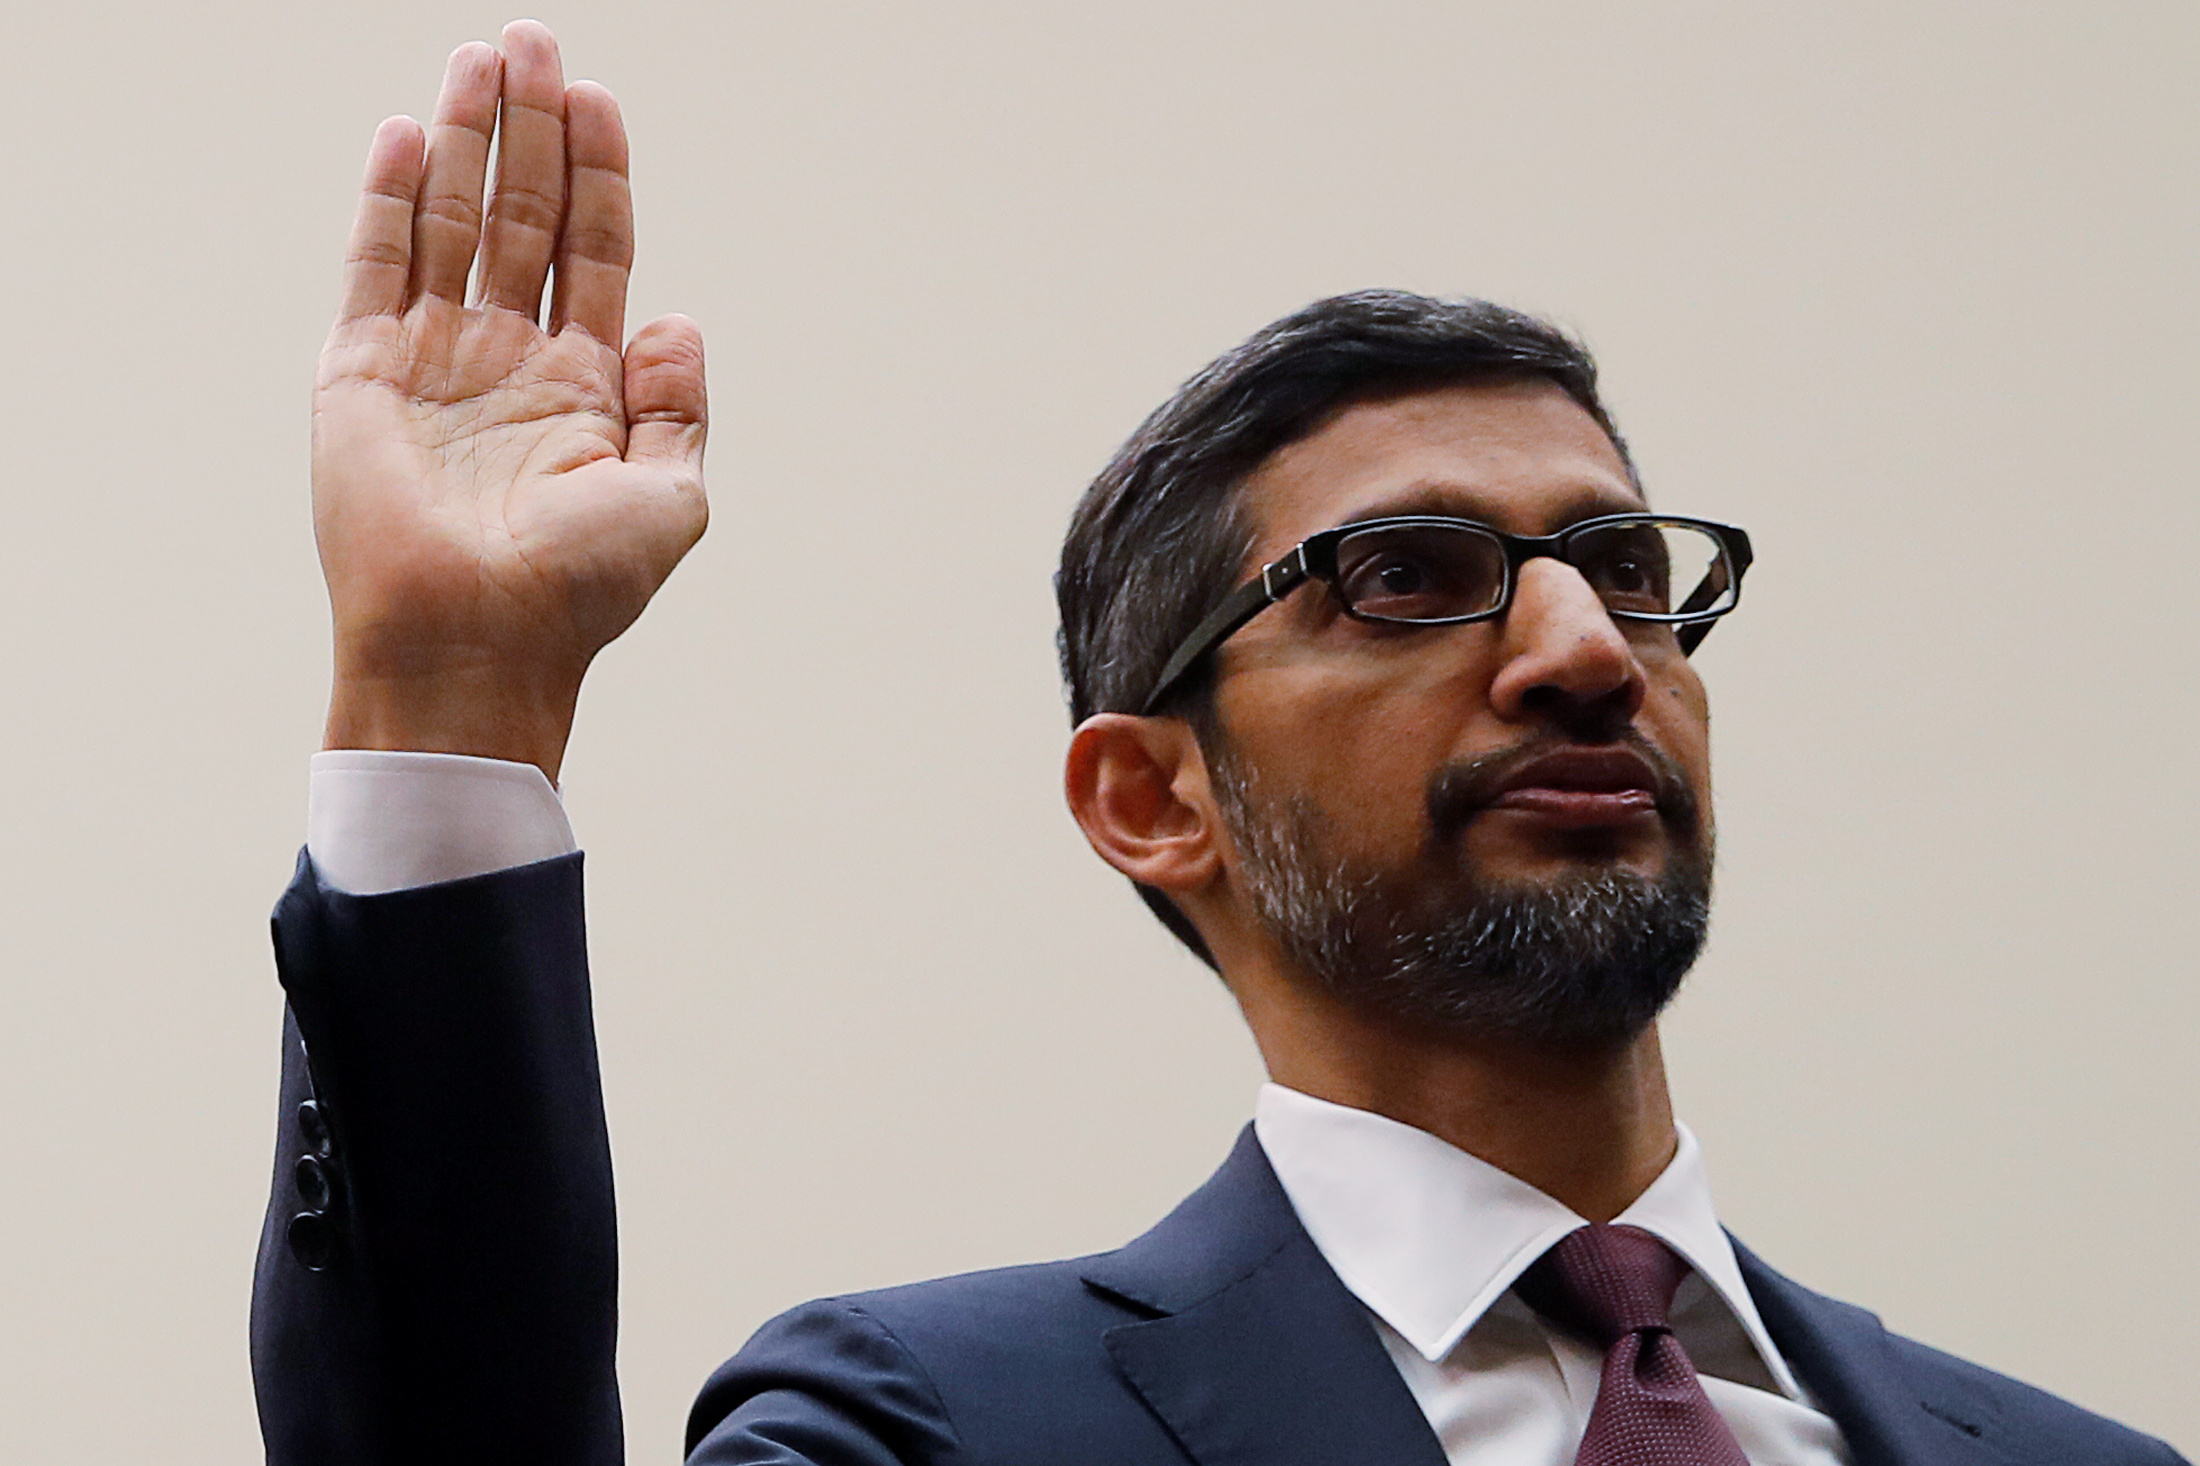 """Google CEO Sundar Pichai is sworn in prior to testifying at a House Judiciary Committee hearing """"examining Google and its Data Collection, Use and Filtering Practices"""" on Capitol Hill in Washington, U.S., December 11, 2018. REUTERS/Jim Young - RC1855757920"""